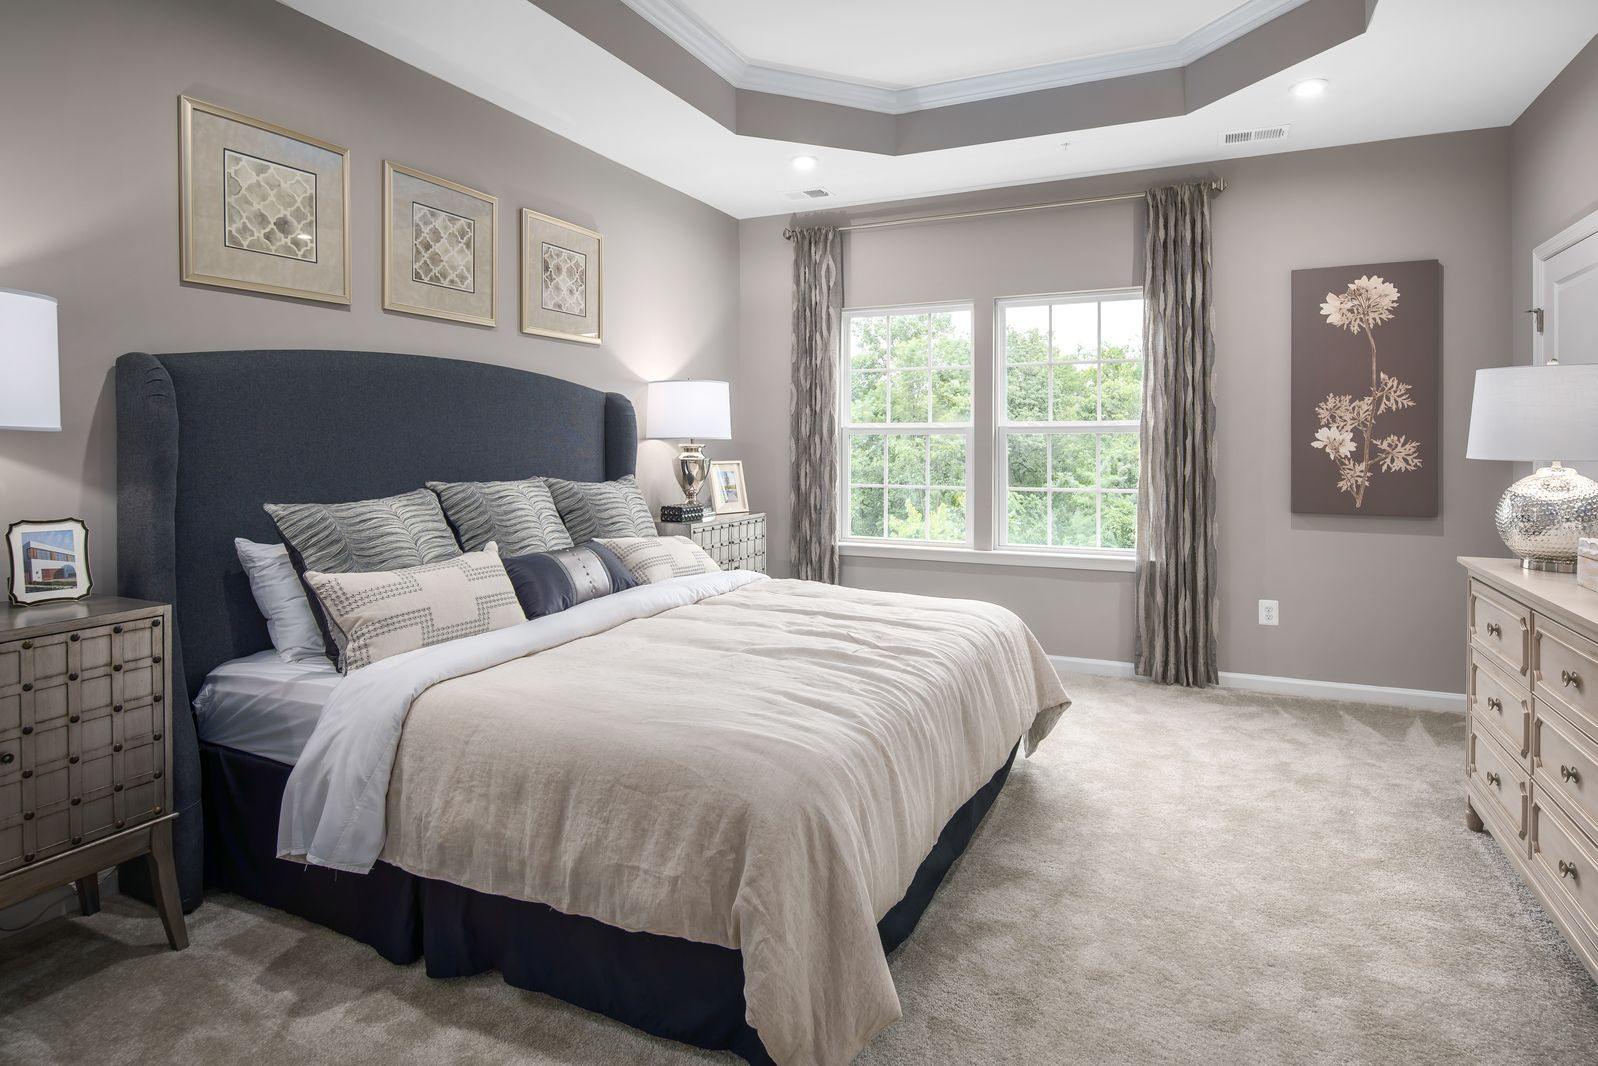 Bedroom featured in the Mozart By Ryan Homes in Philadelphia, NJ